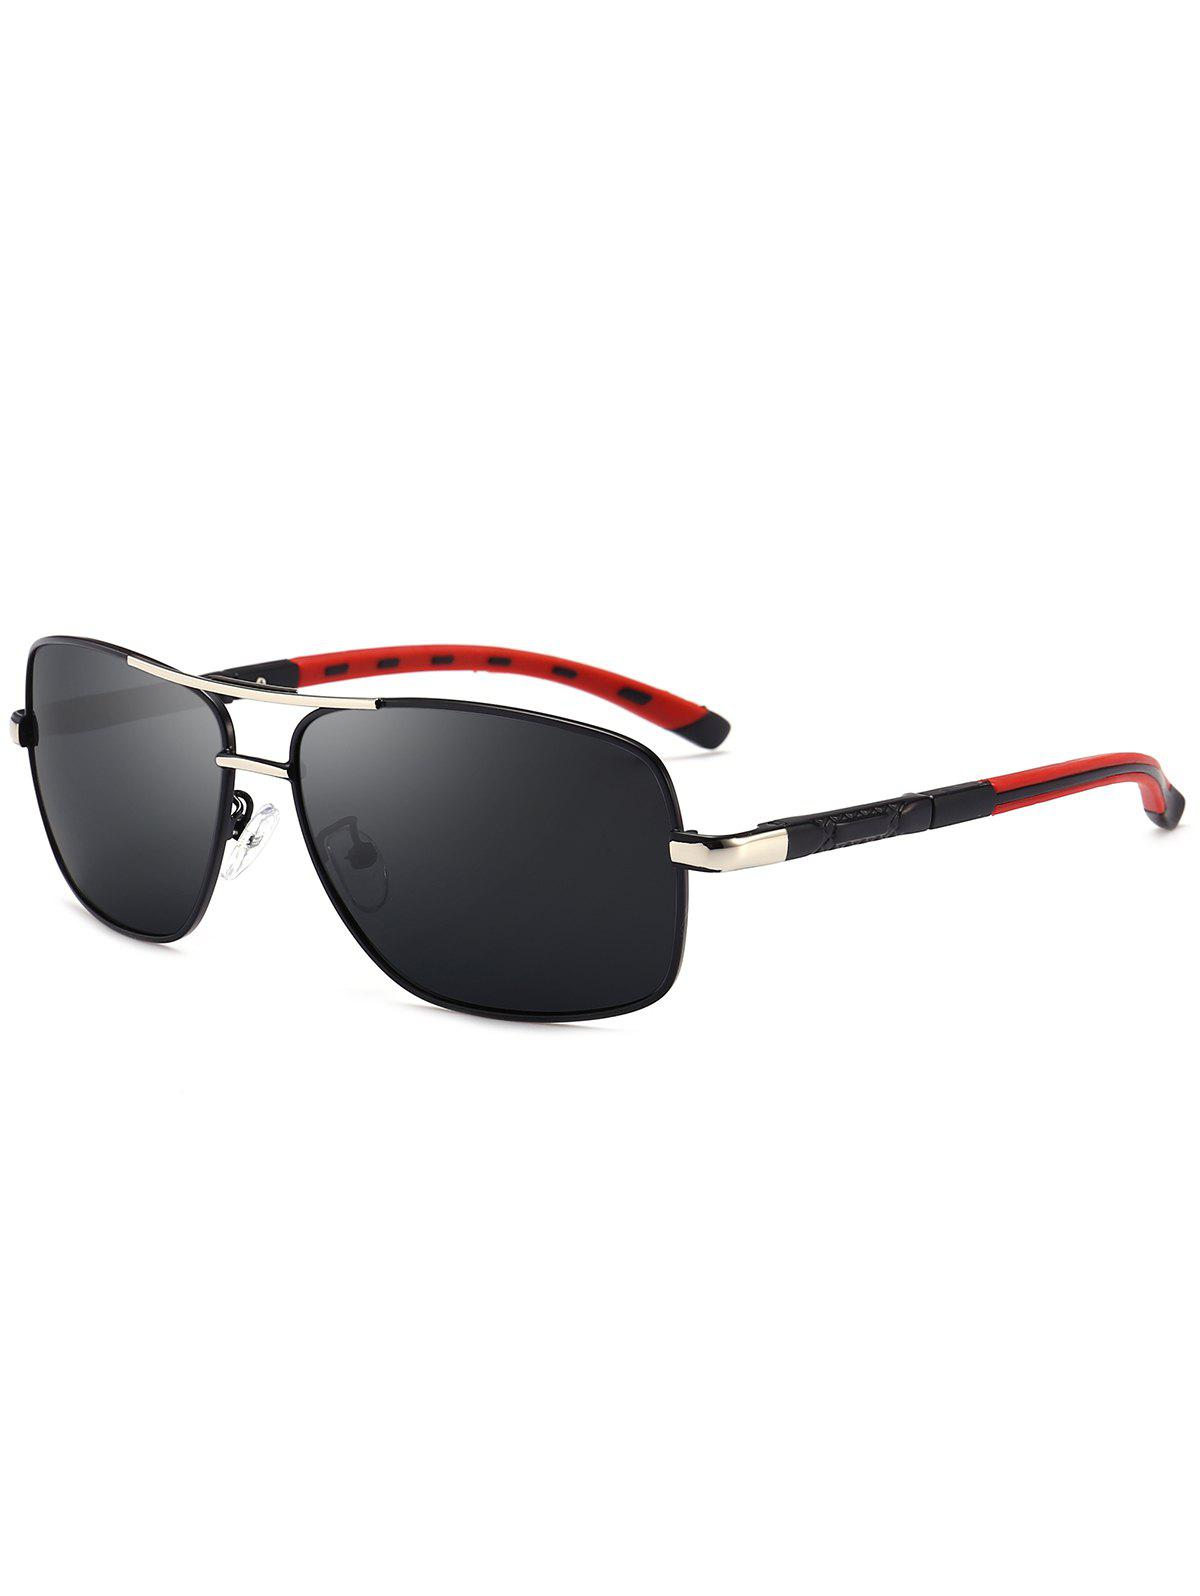 Square Pilot Sunglasses Two Tones Leg - BLACK/GREY